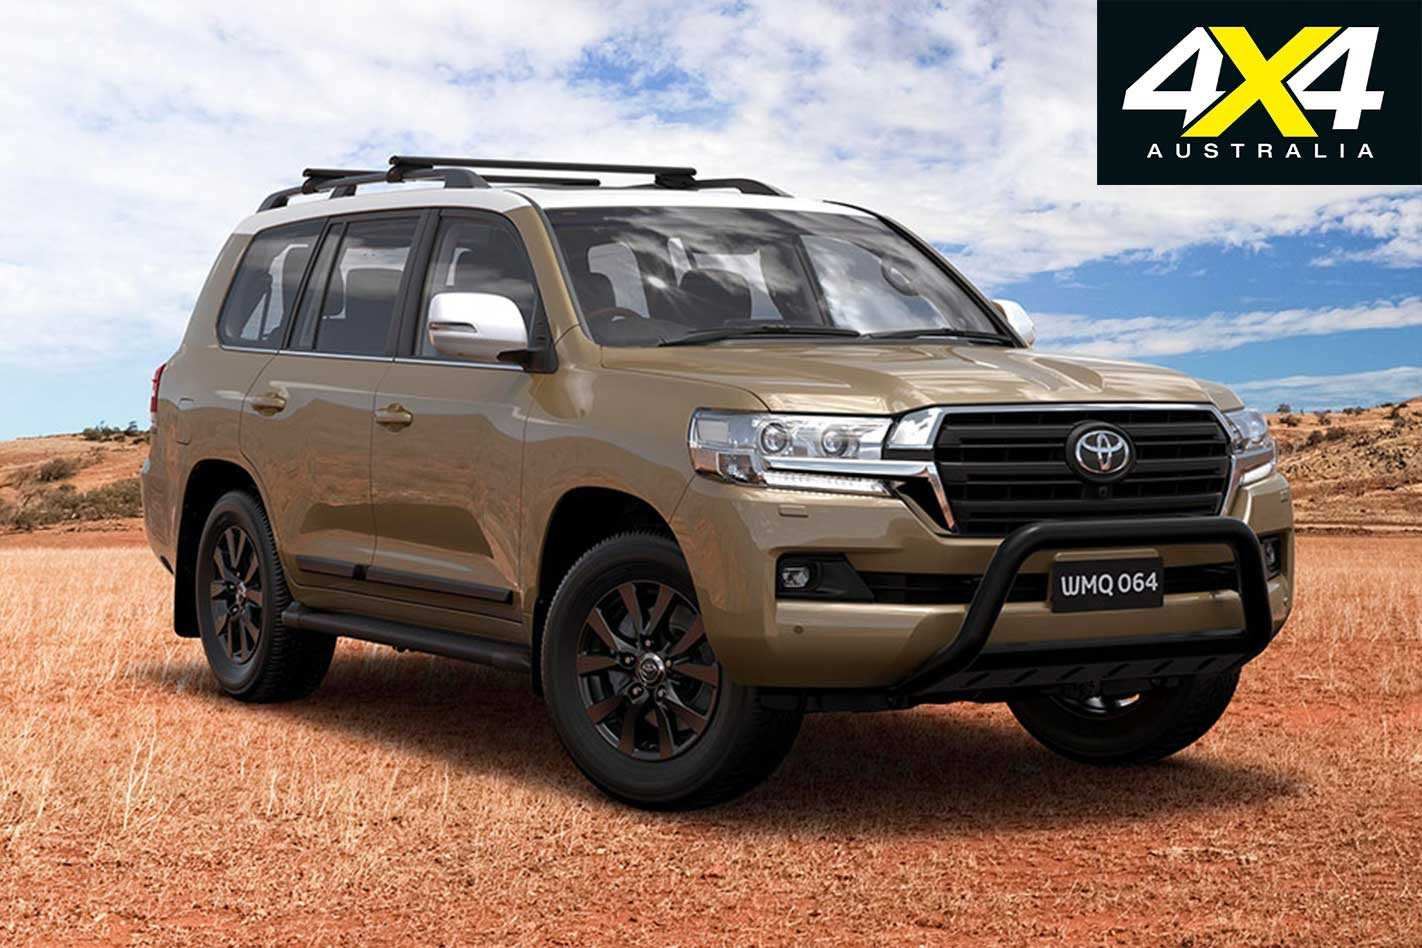 41 All New 2020 Toyota Land Cruiser 200 Performance